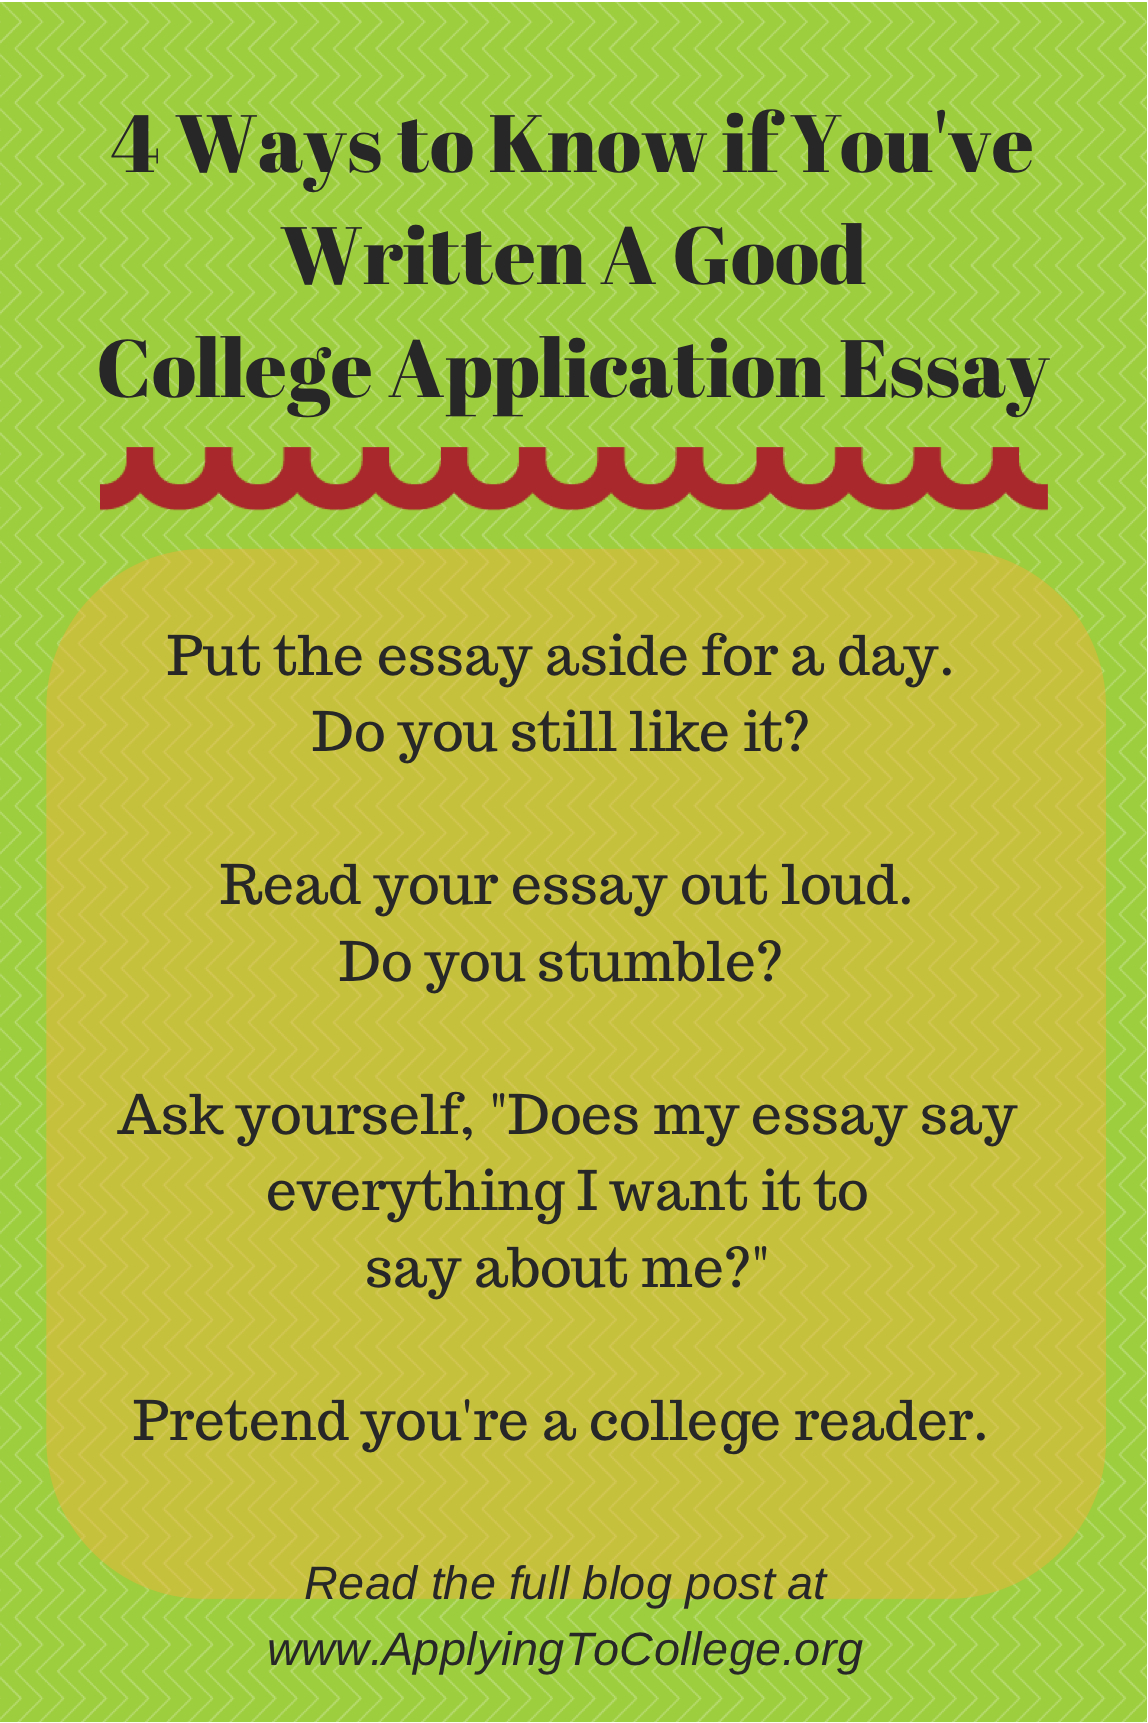 009 4ways To Know If Youve Written Good Read My Essay Unusual Reddit For Free Online Full